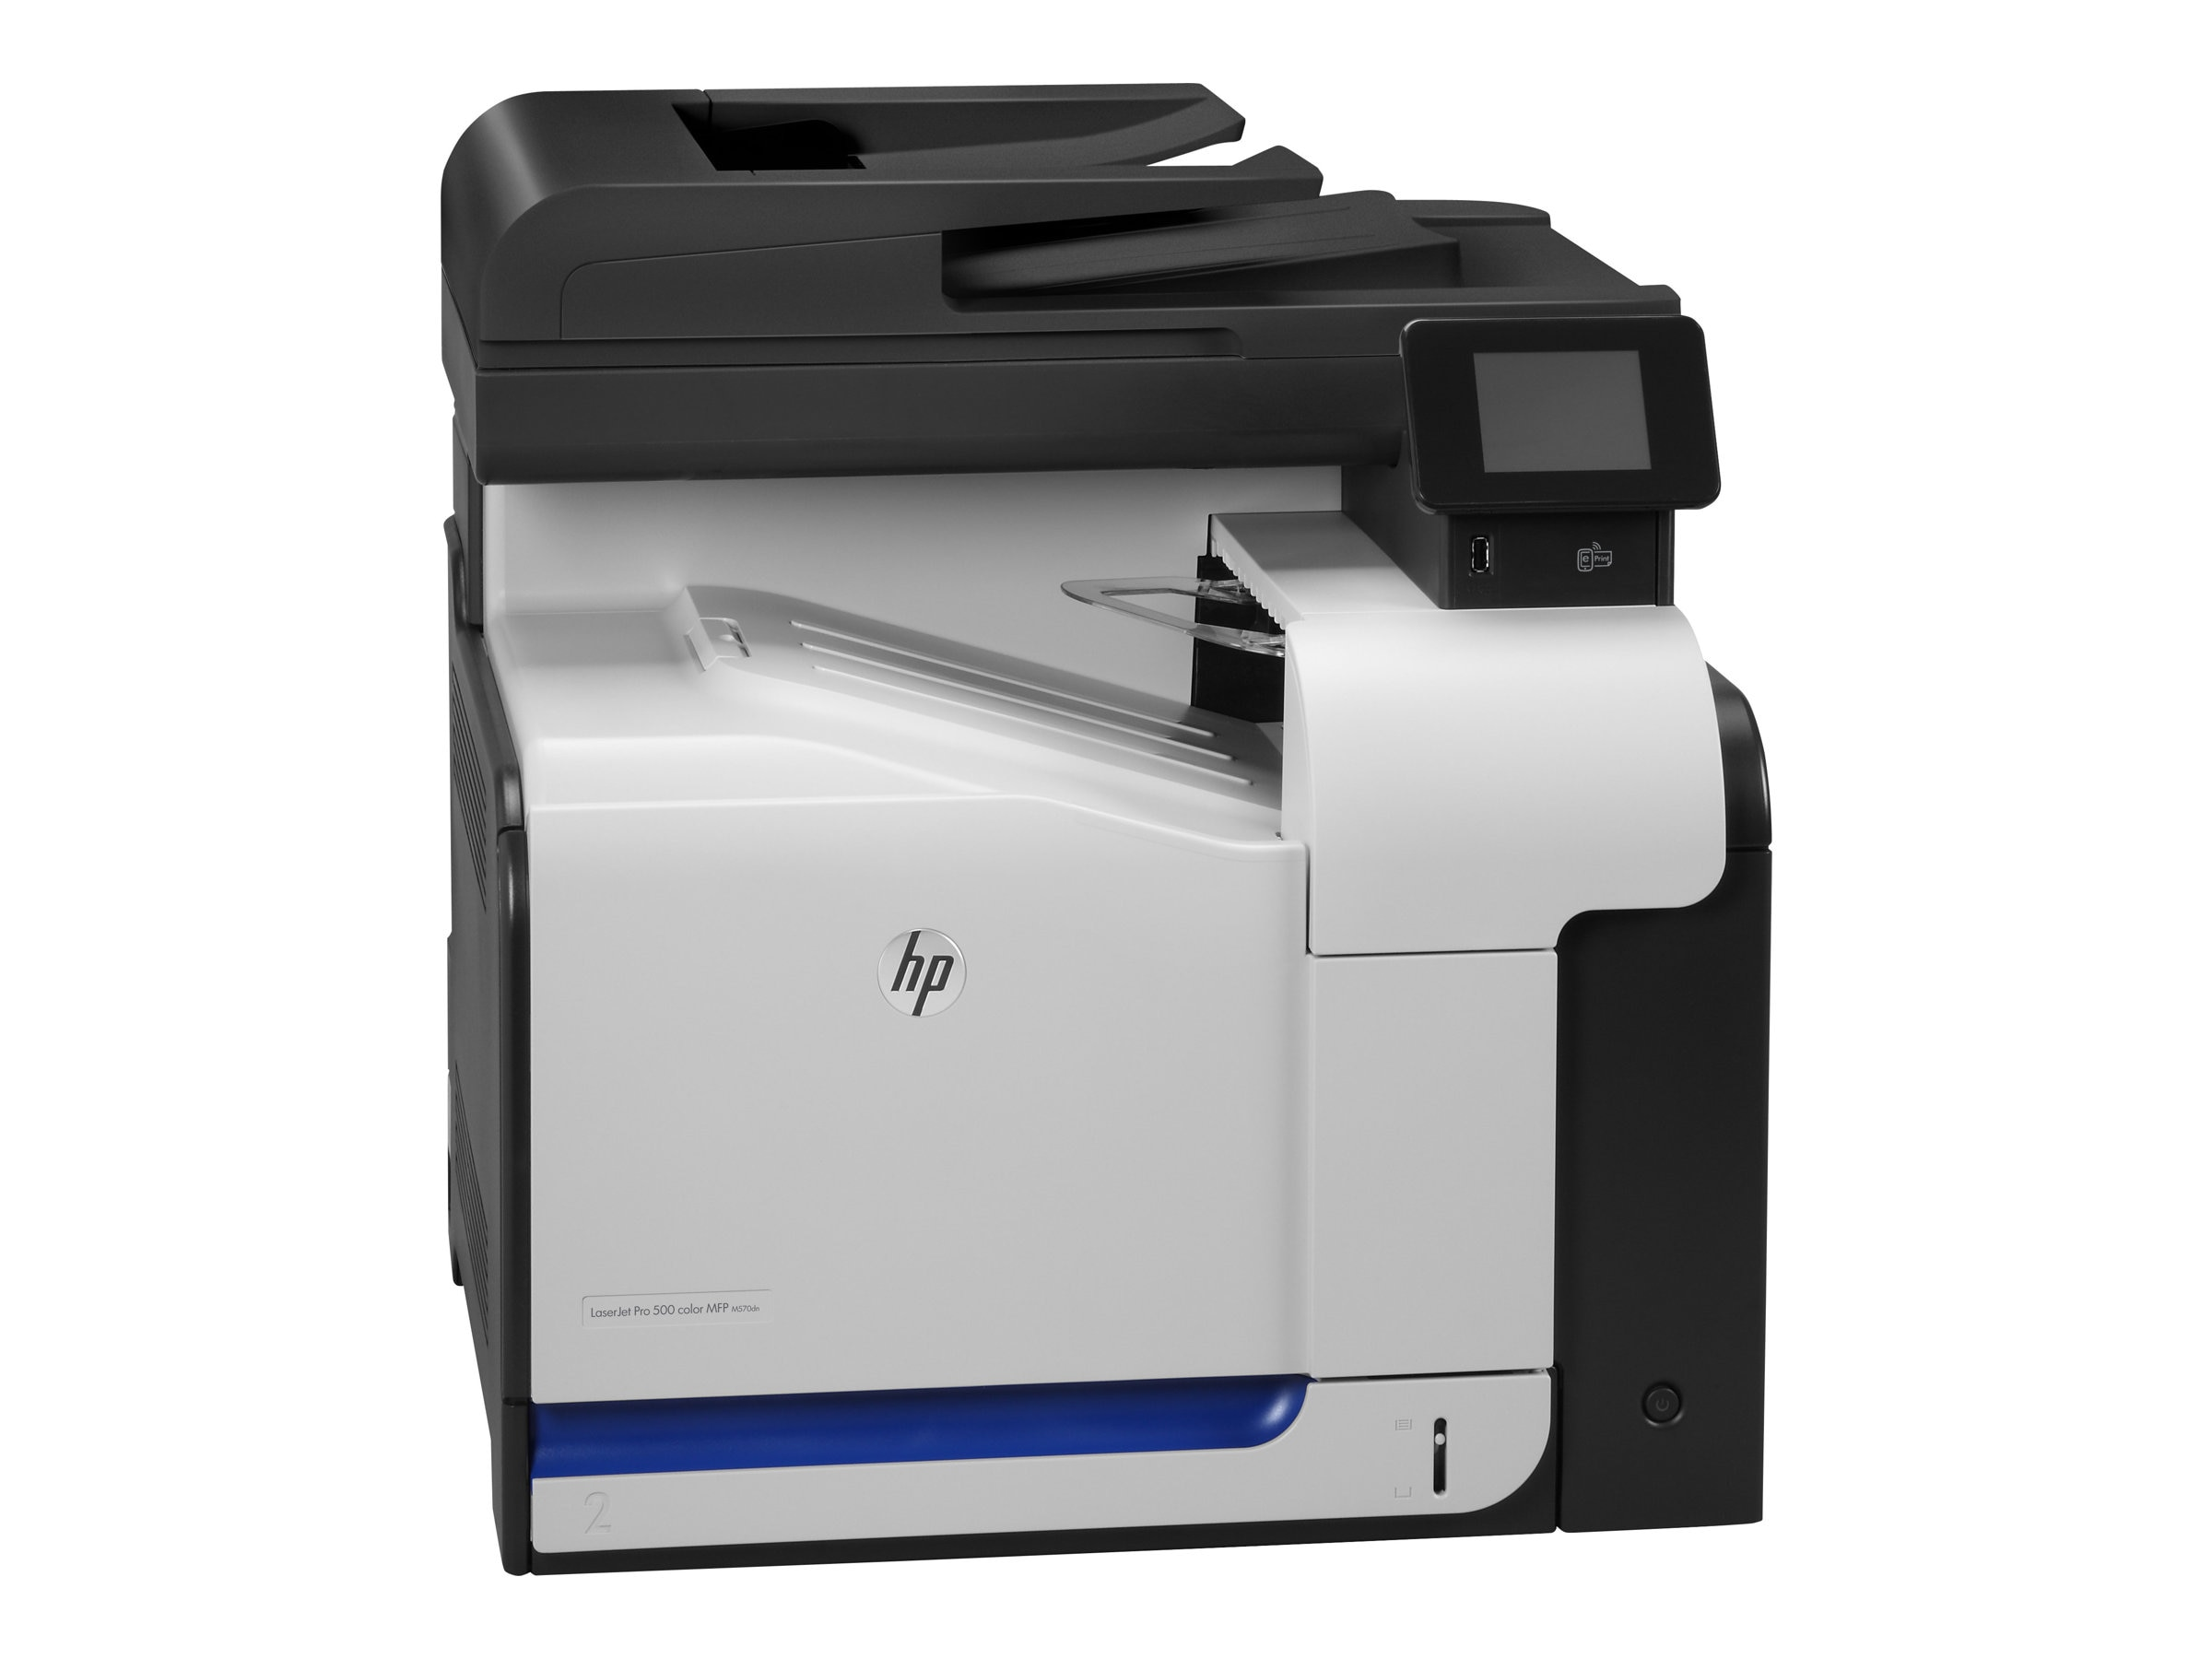 HP LaserJet Pro 500 color MFP M570dn ($999 - $250 Instant Rebate = $749 Expires 5 31 2016)